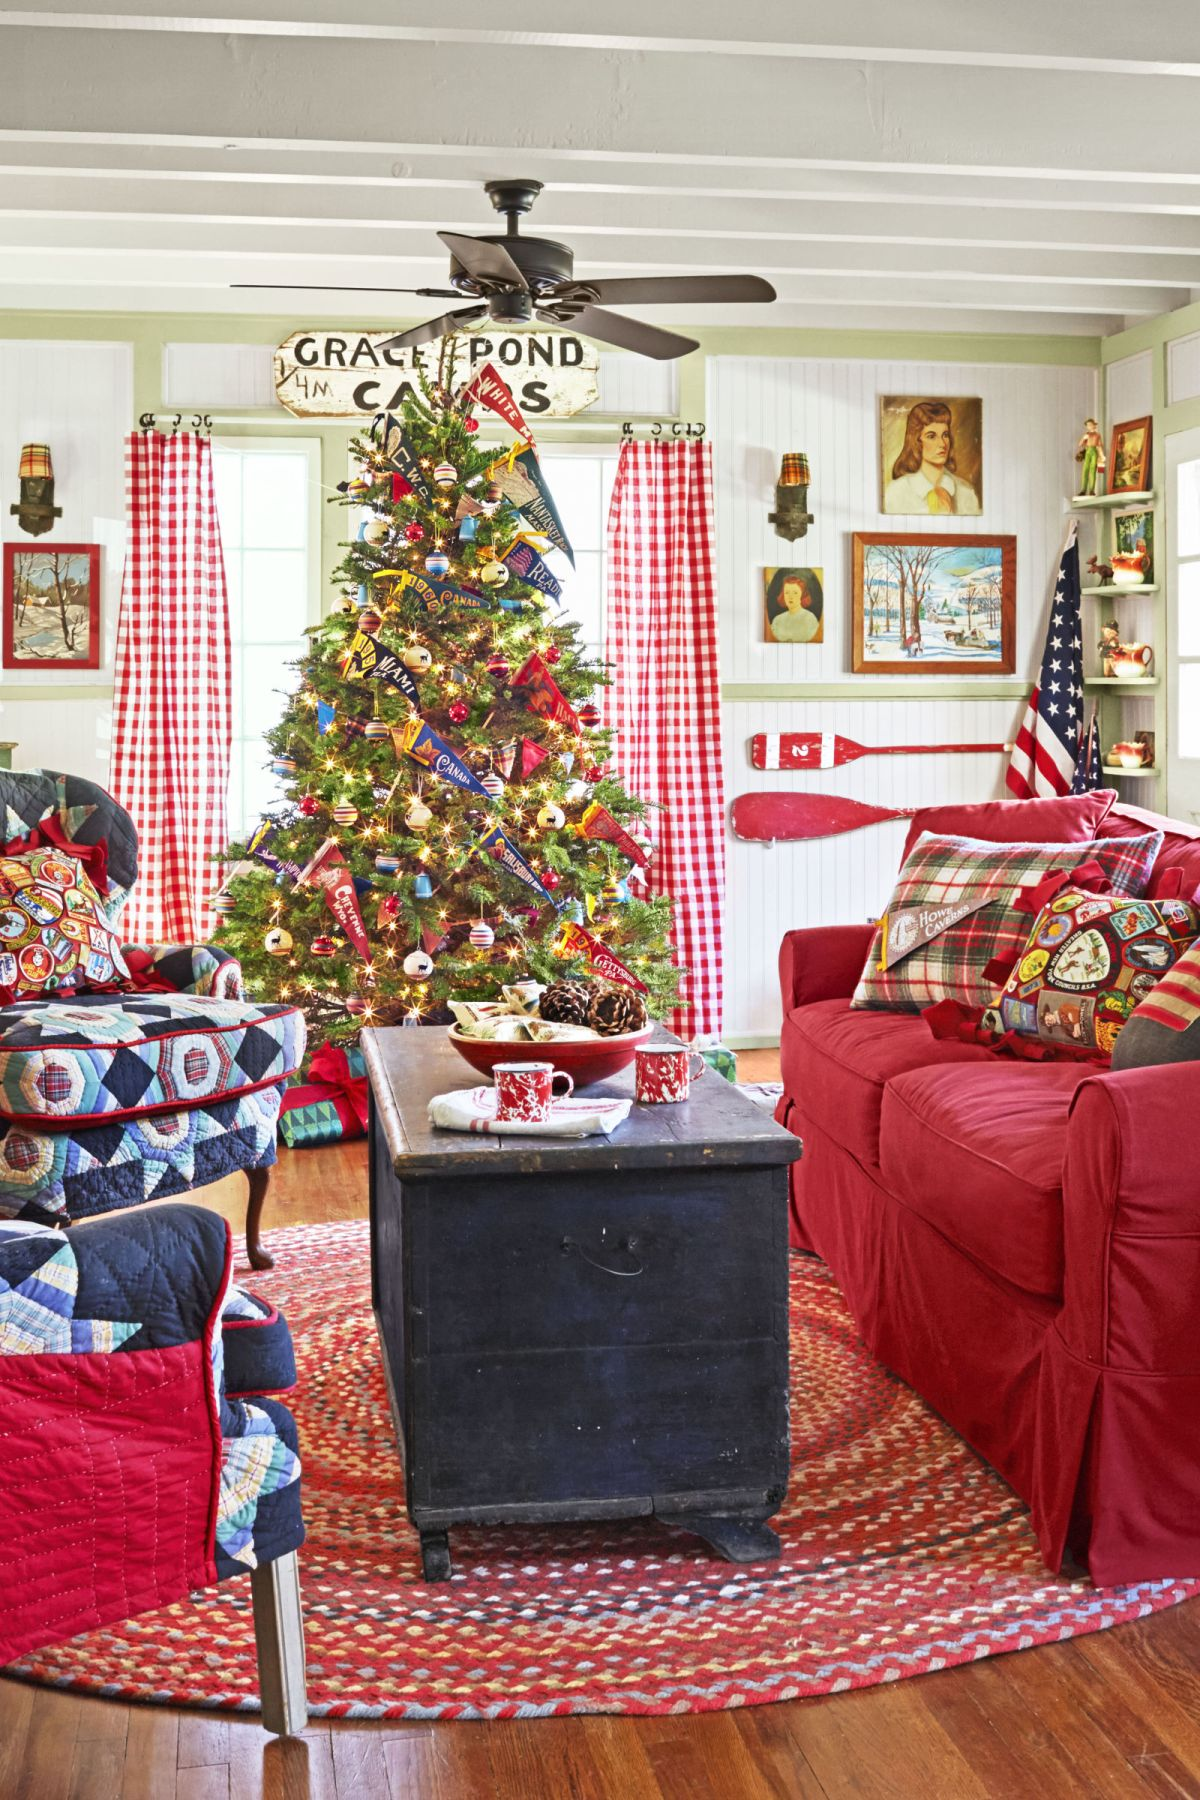 All The Wonderful Christmas Tree Ideas You Need For A Wonderful Holiday images 31